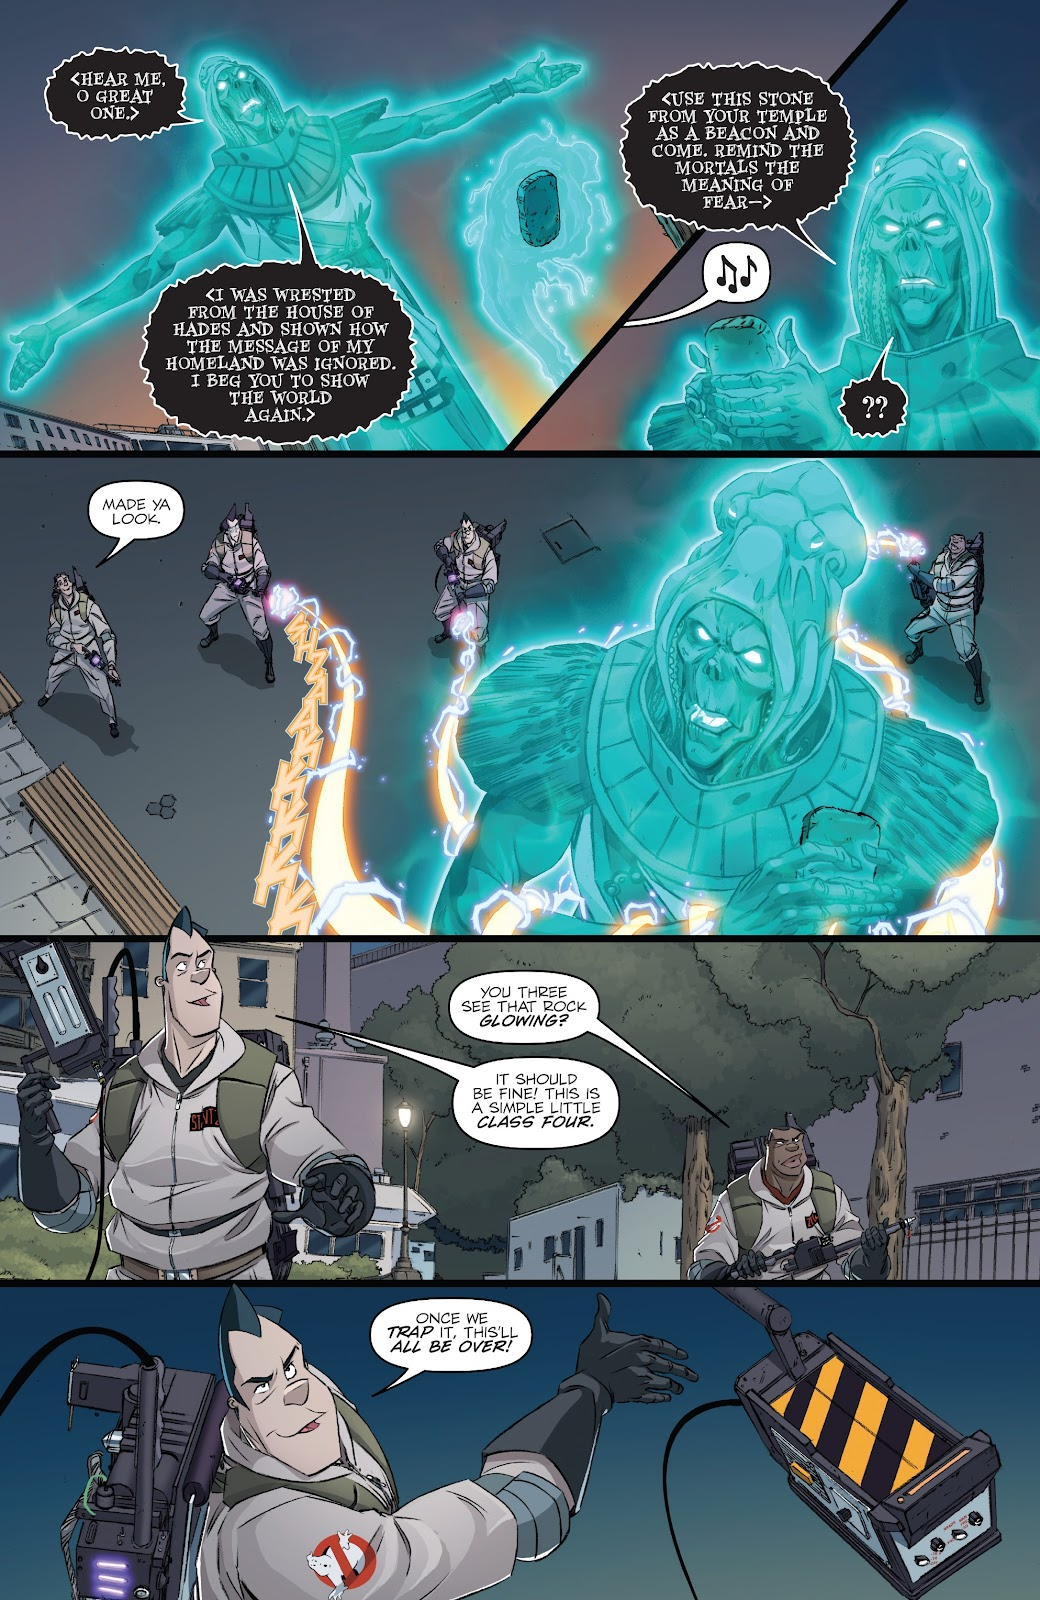 Read online Ghostbusters 35th Anniversary: Ghostbusters comic -  Issue # Full - 20